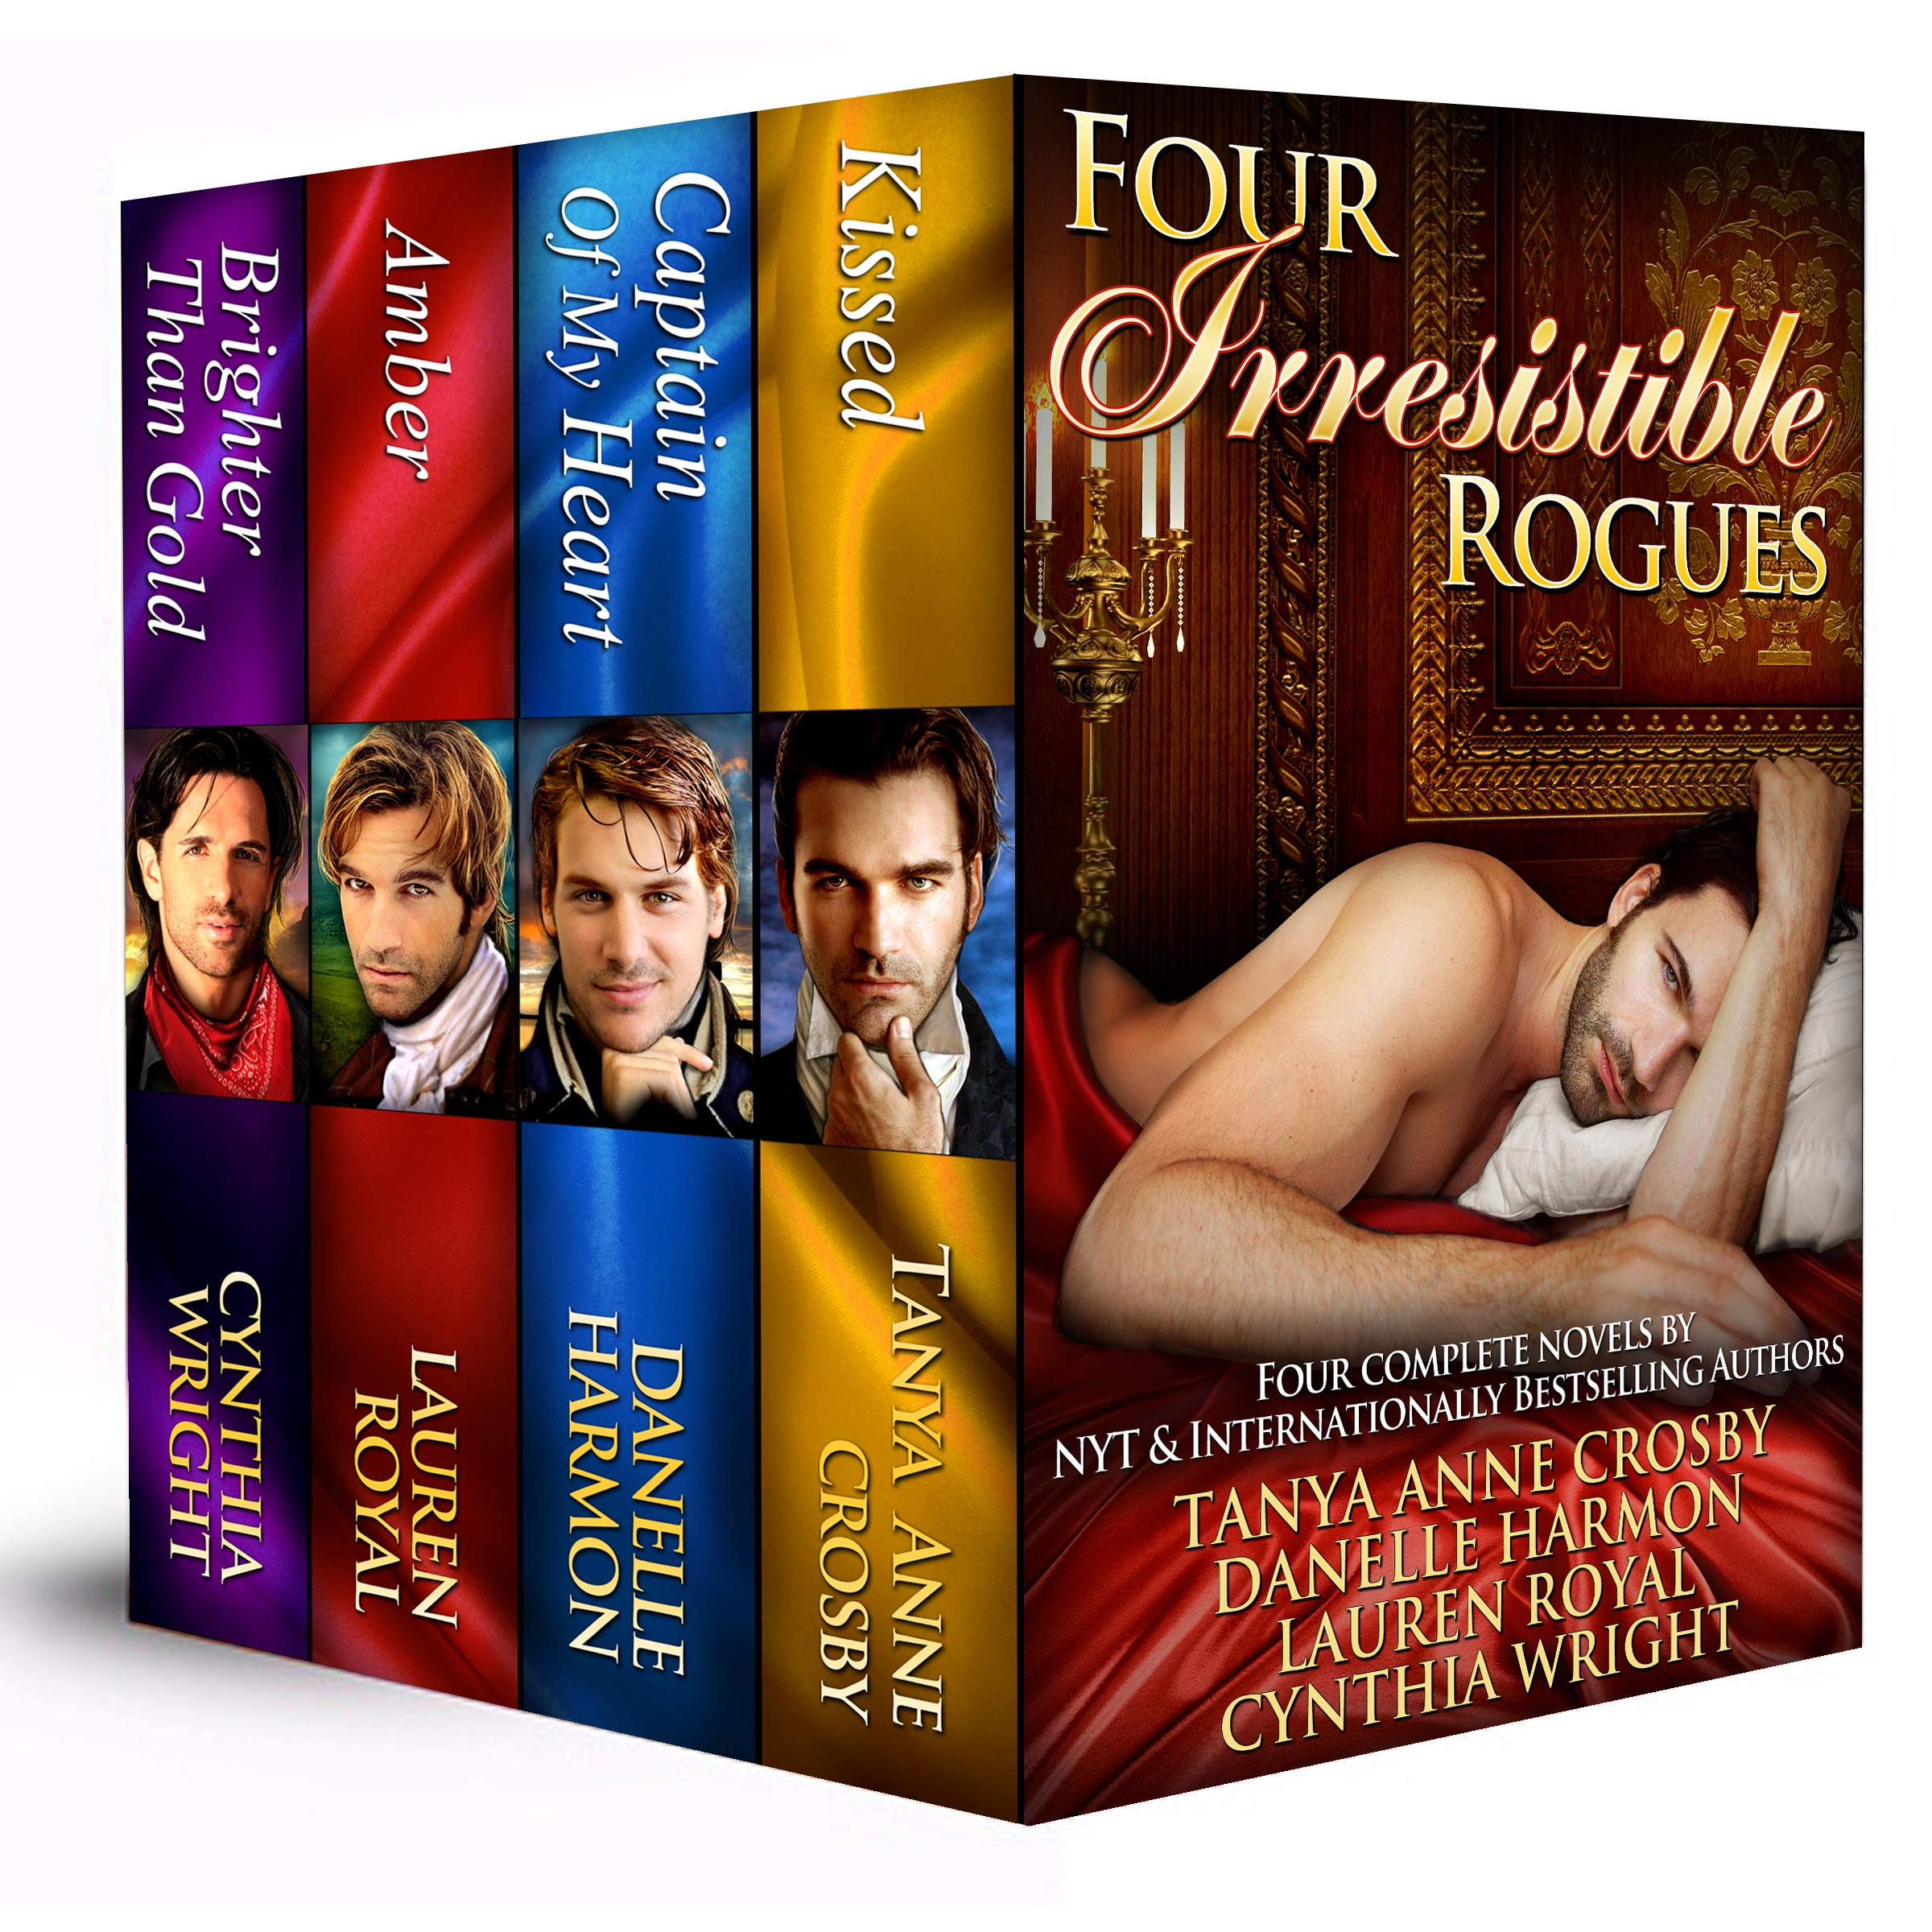 Four Irresistible Rogues By: Cynthia Wright,Lauren Royal,Tanya Anne Crosby